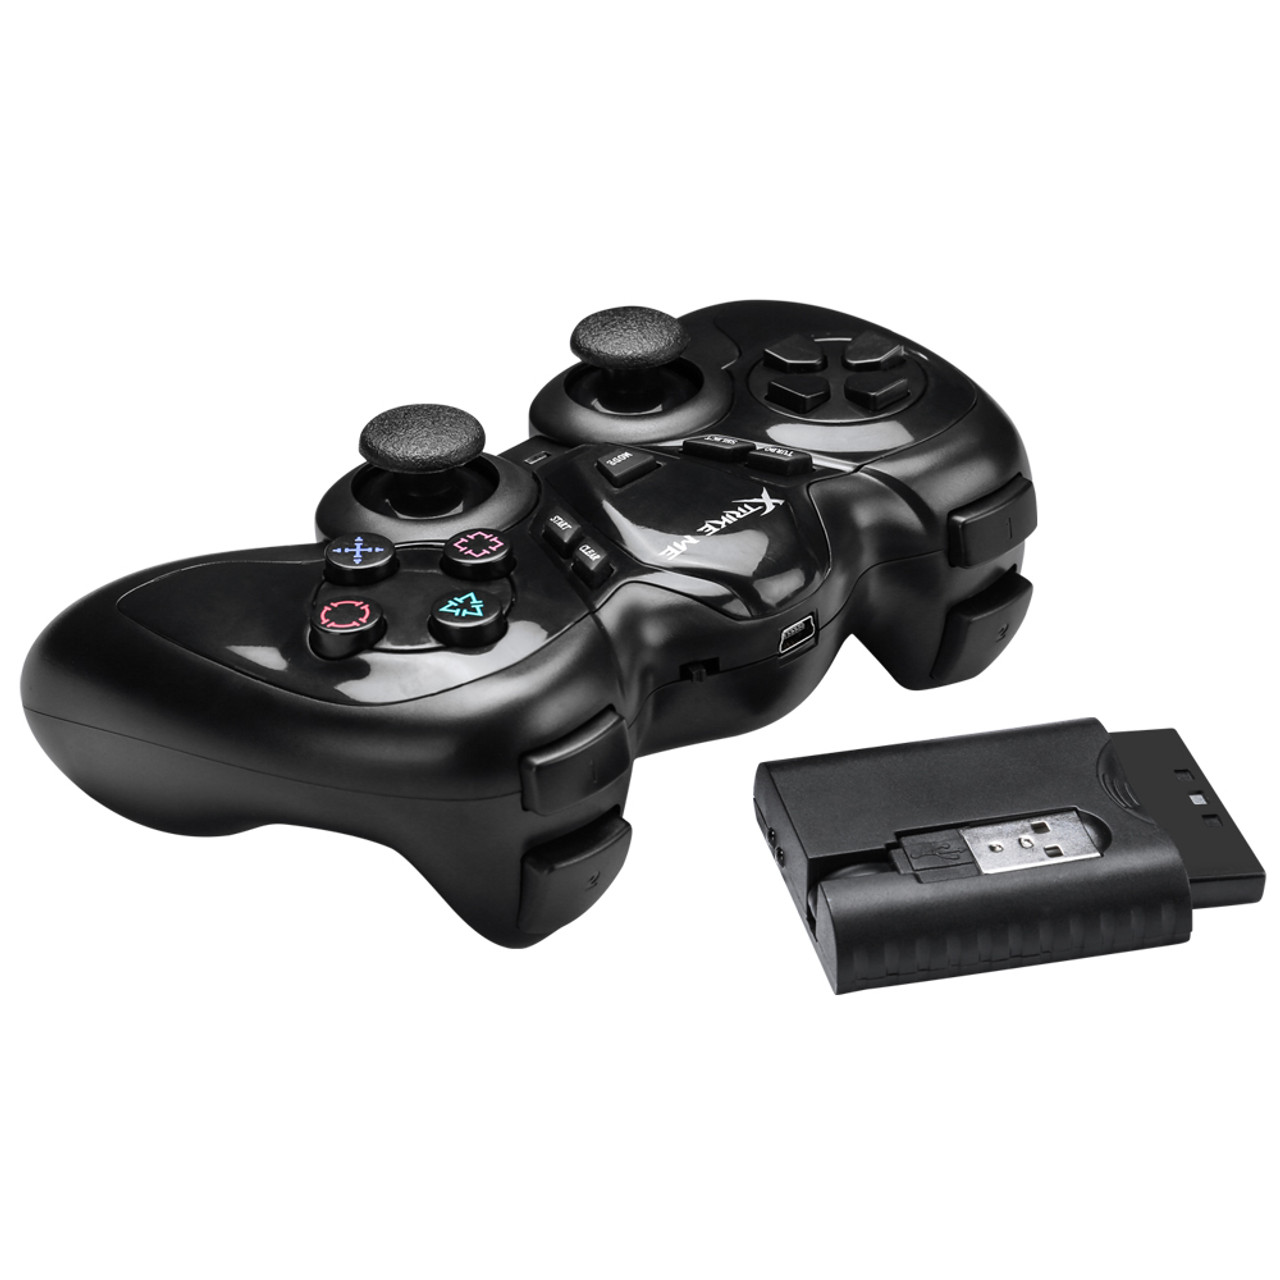 Xtrike GP-42 2 4GHZ WIRELESS GAMEPAD Compatibility: PS2, PS3, PC360, Android